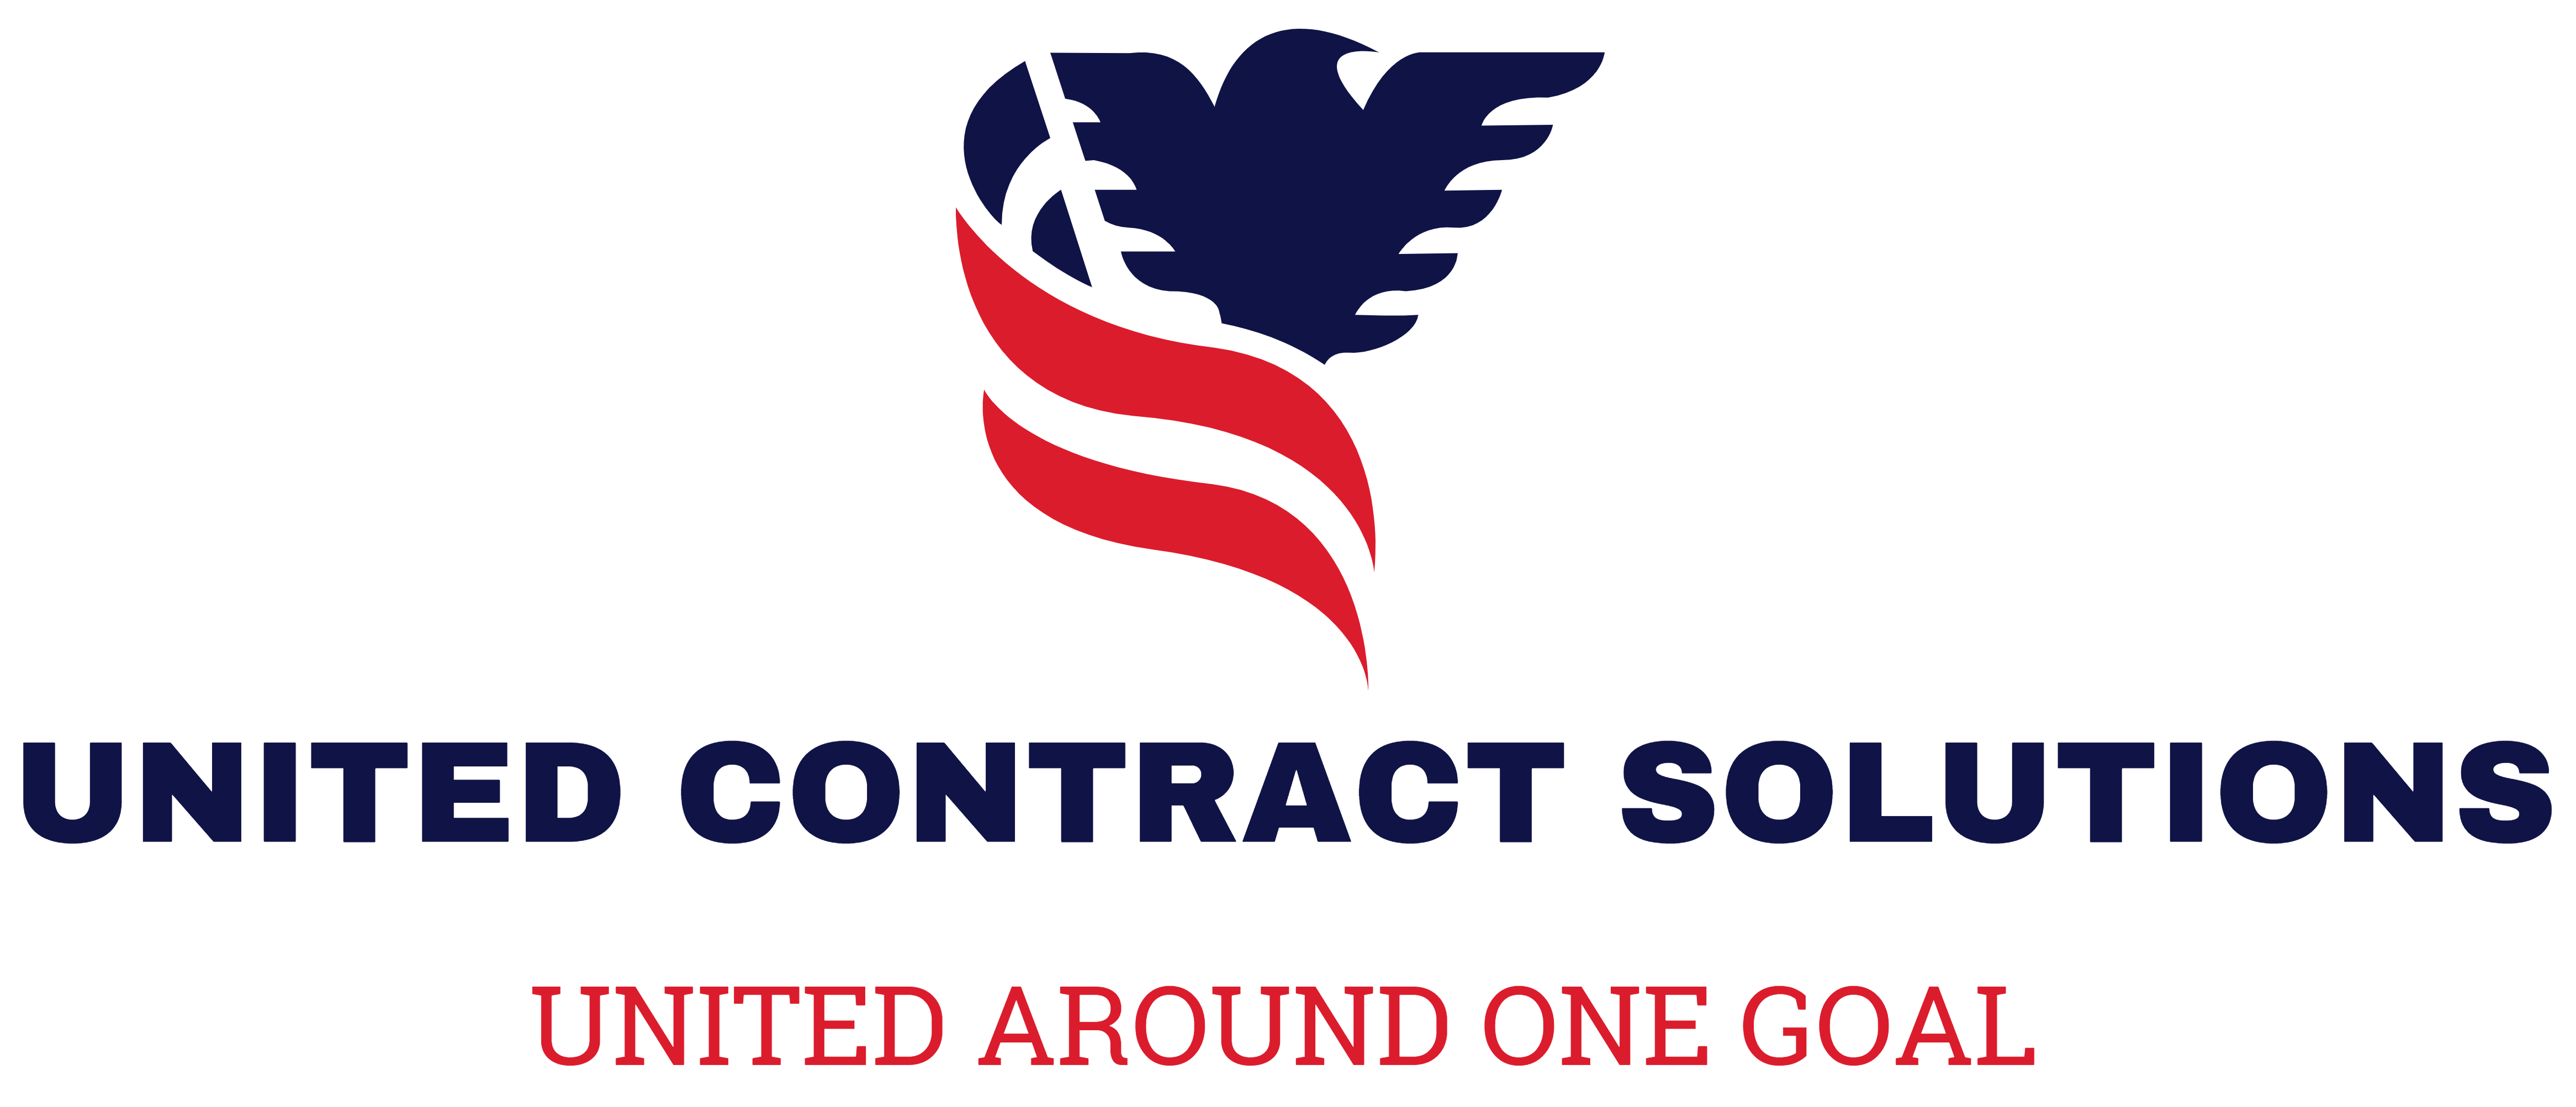 United Contract Solutions